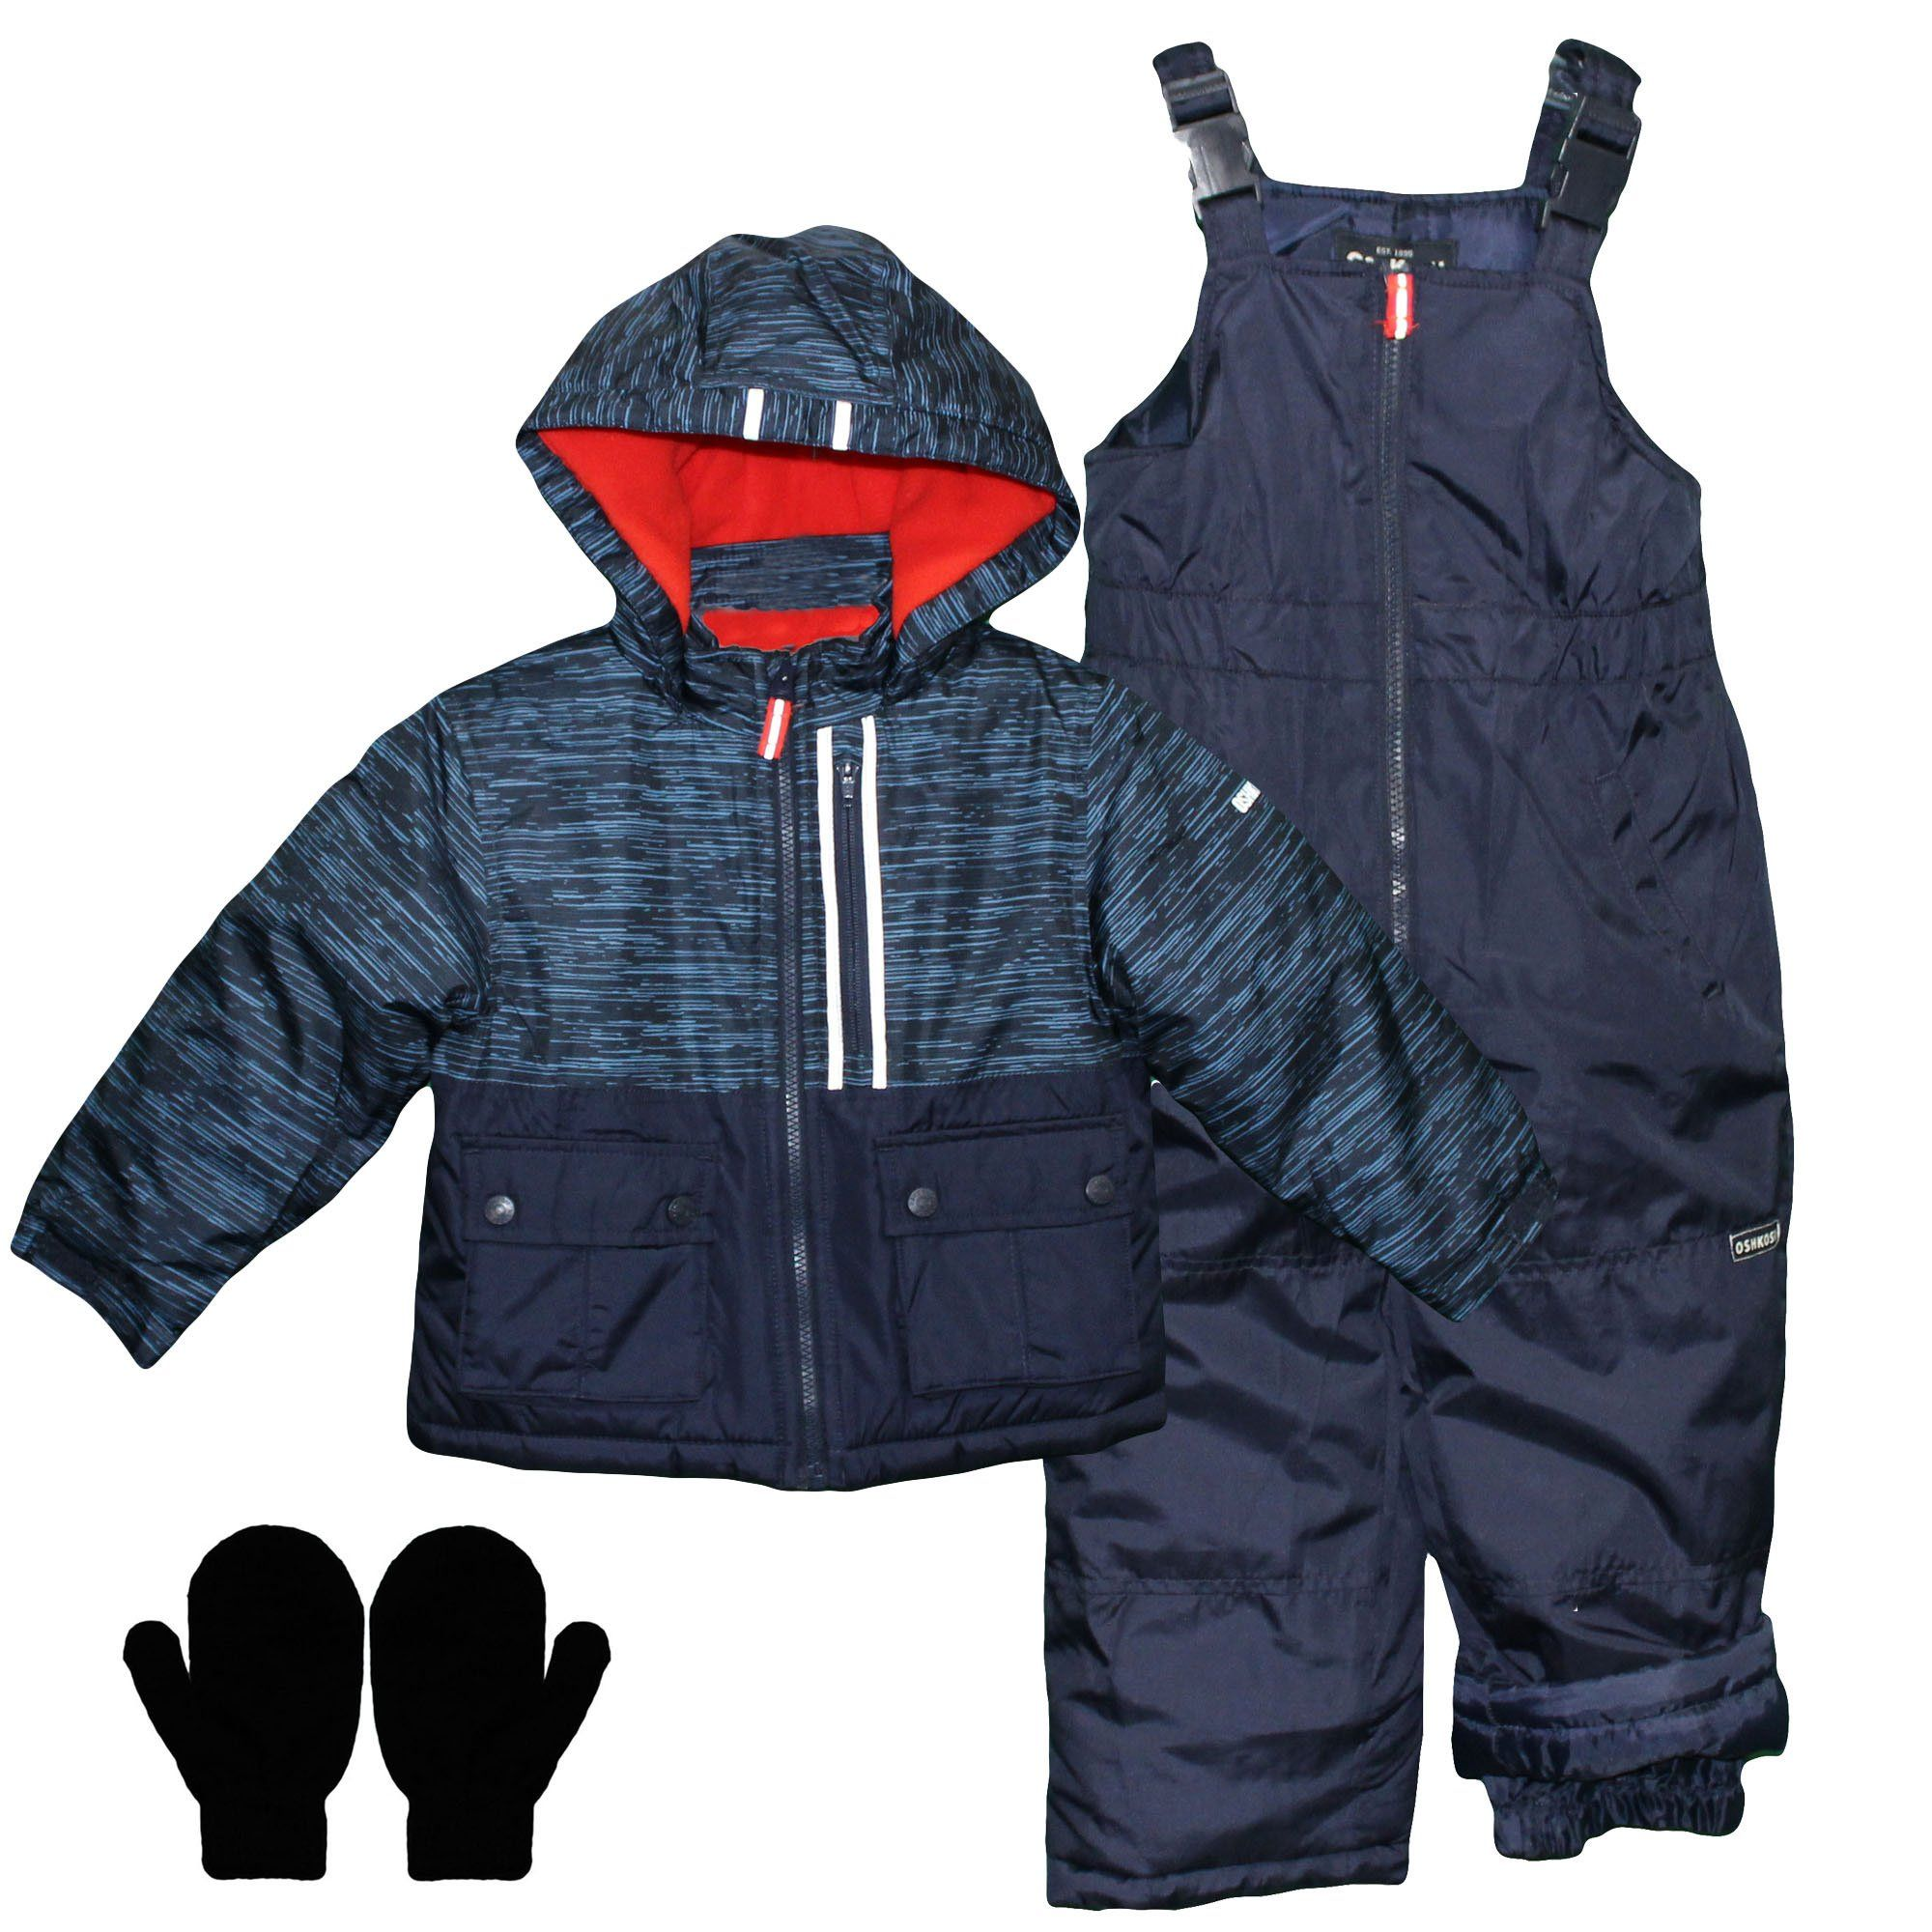 989c64436578 OshKosh Toddler Heavy Snow Suit Winter Jacket Snow Pants and Mittens ...